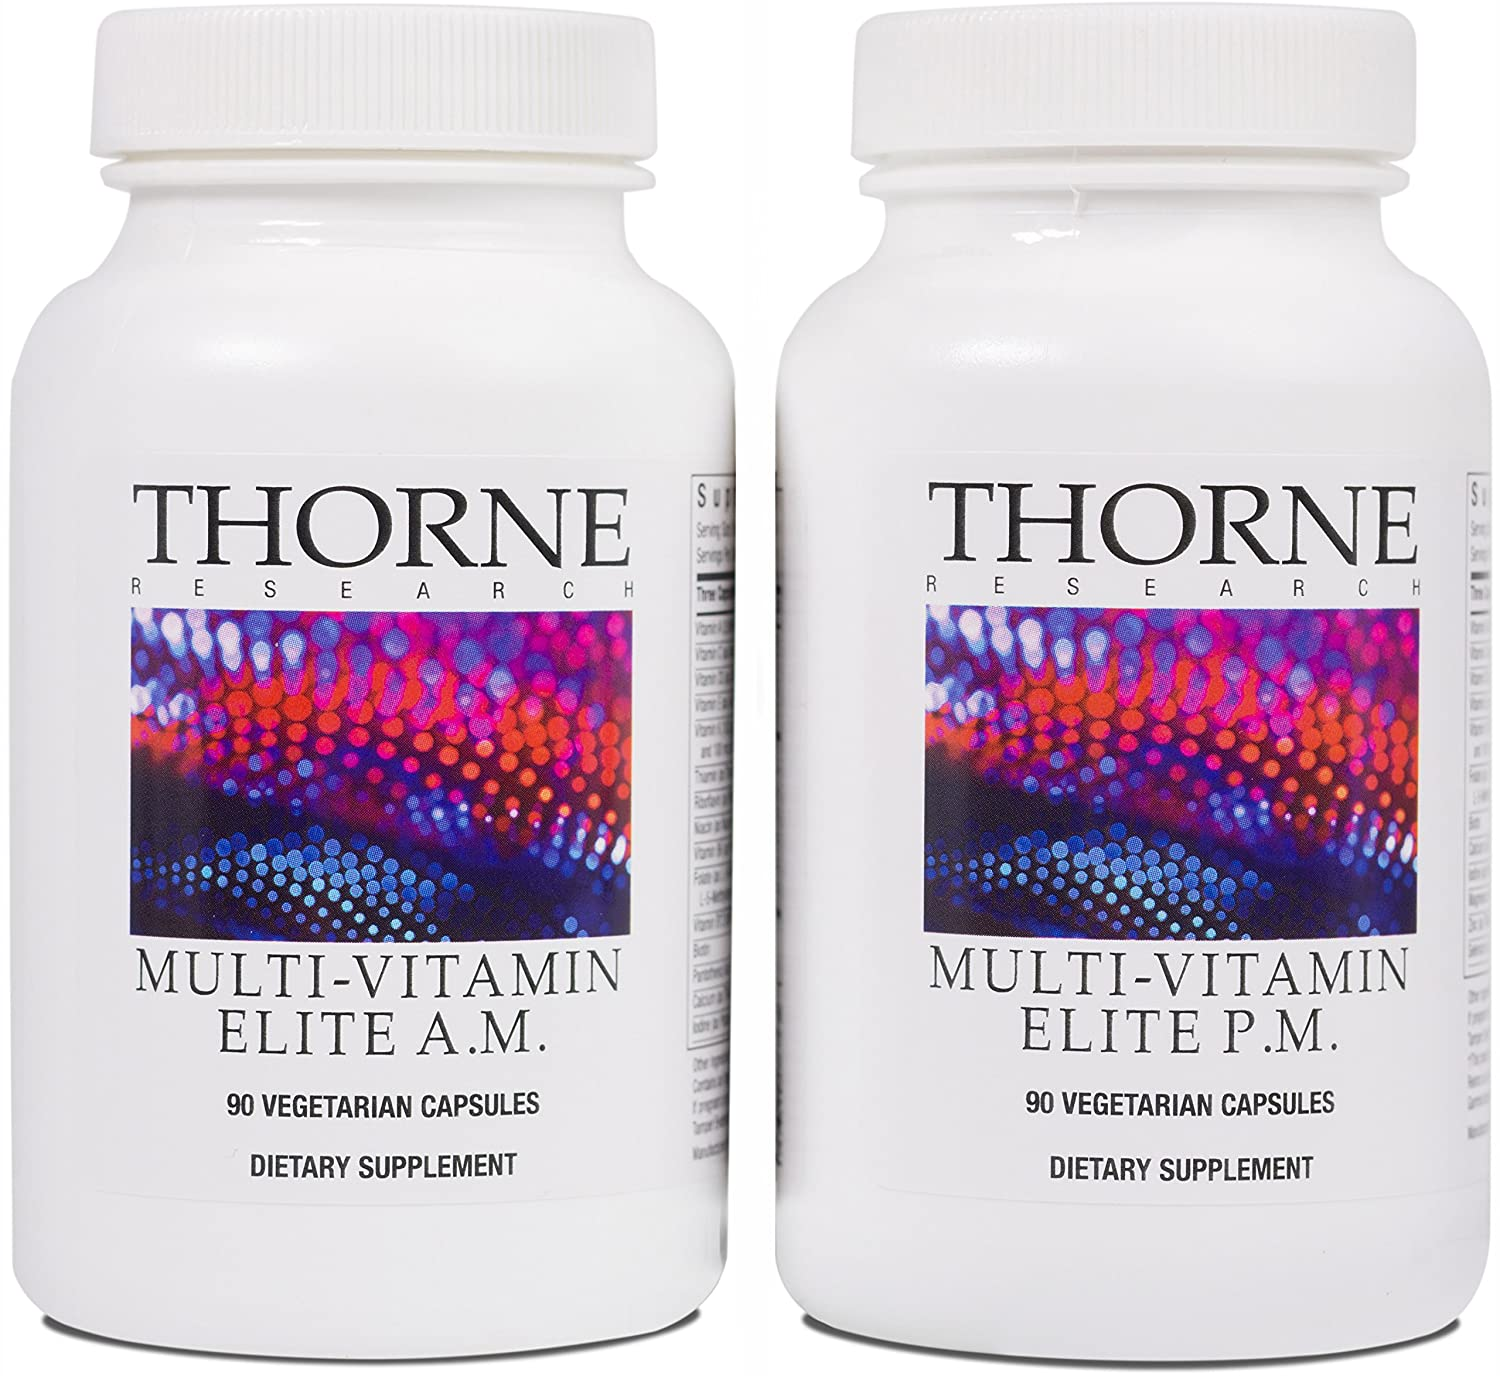 Thorne Research - Multi-Vitamin Elite - A.M. and P.M. Formula to Support a High Performance Nutrition Program - NSF Certified for Sport - 180 Capsules